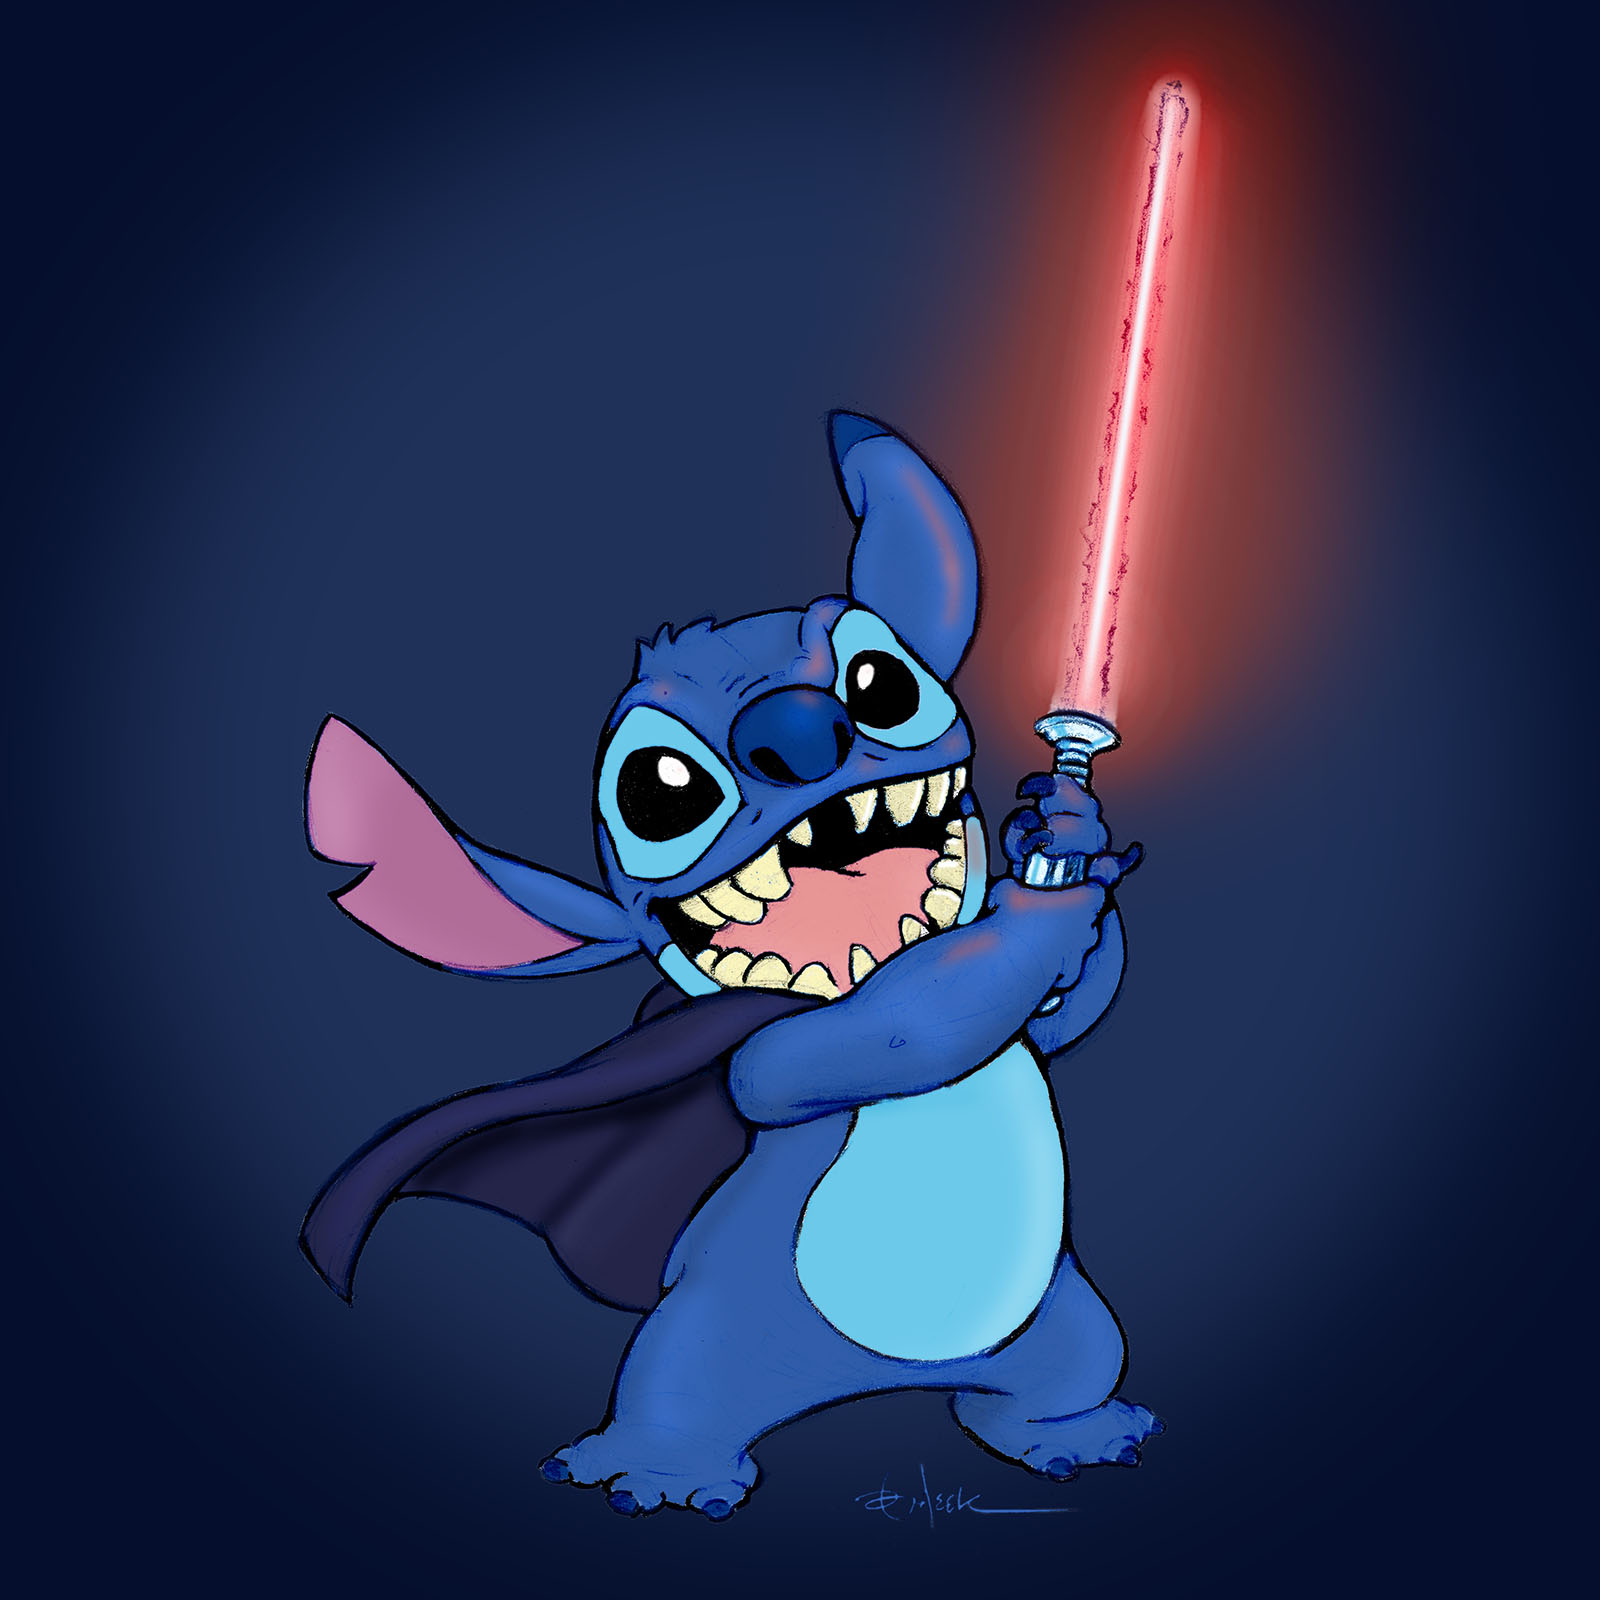 Star Wars Stitch